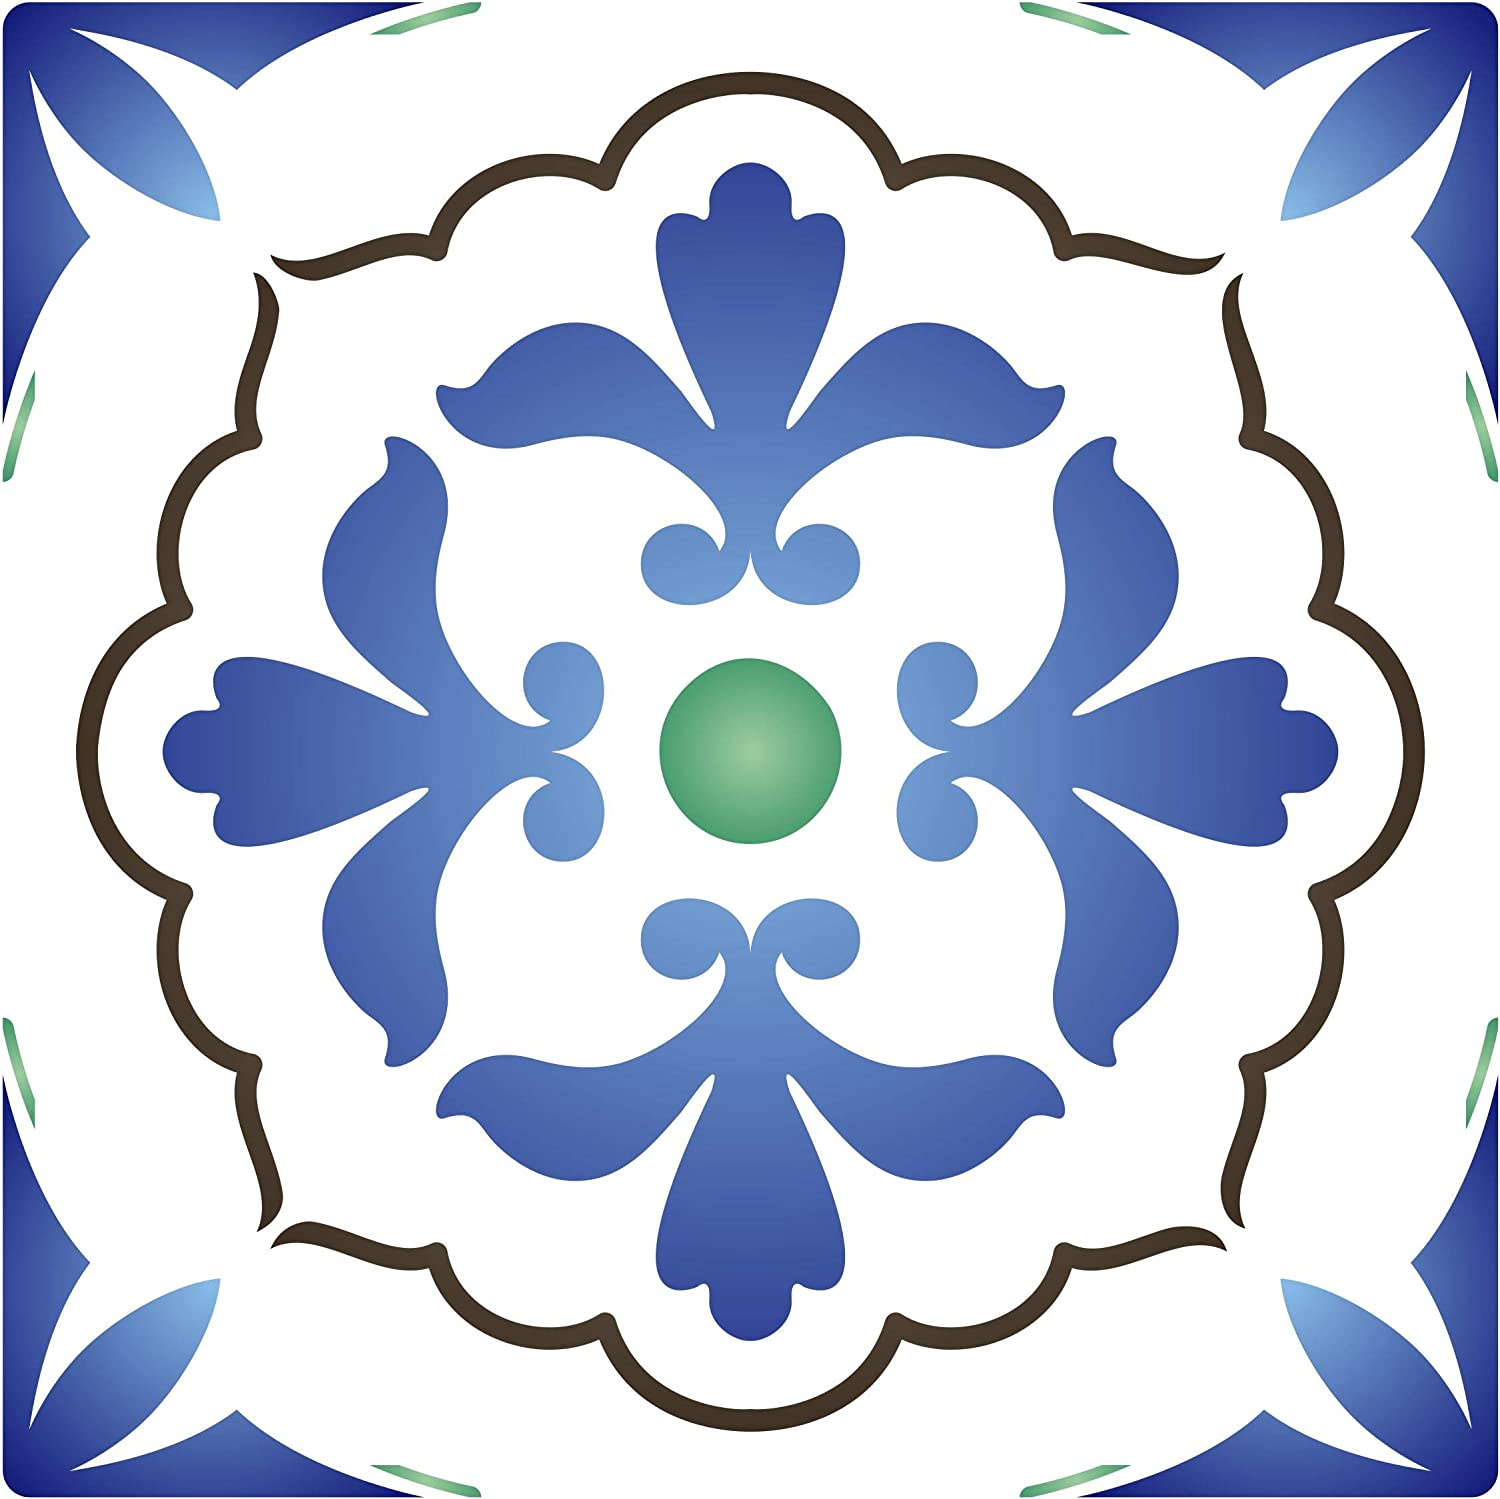 Italian Tile Stencil, 6 x 6 inch (S) - Talavera Mexican Moroccan Turkish Tile Stencils for Painting Template